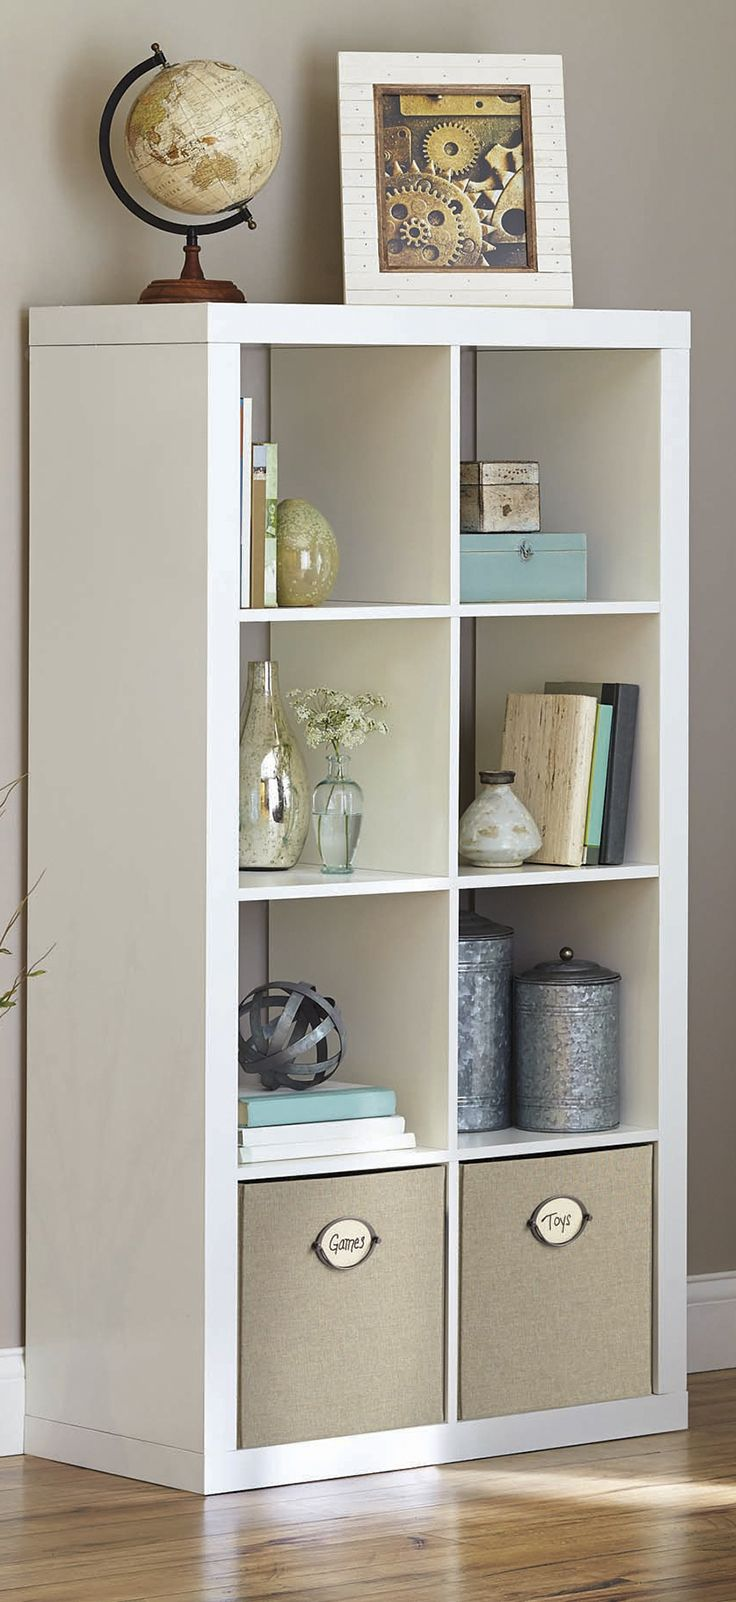 Best 25+ Cube Storage Ideas On Pinterest | Cube Shelves, Ikea Storage Cubes  And 4 Cube Organizer Part 62